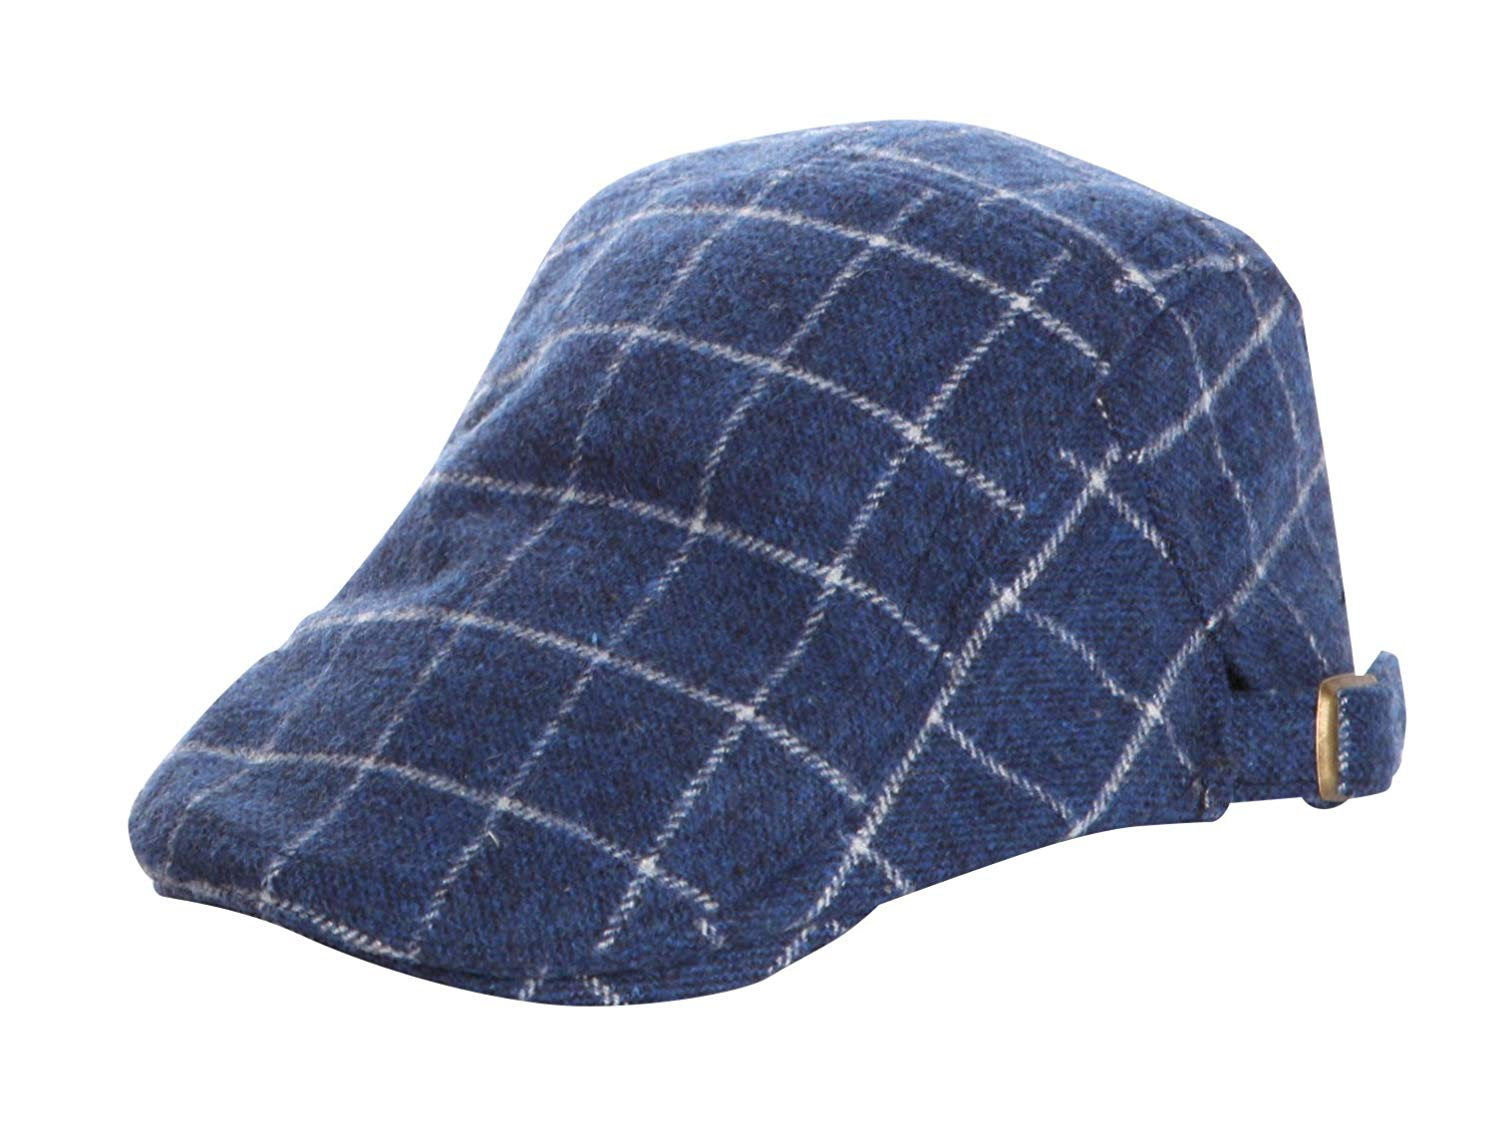 2beeddb6934b6 Home Prefer Kids Toddler Boys Hat Woolen Newsboy Cap Ivy Gatsby Driver Sun  Cap